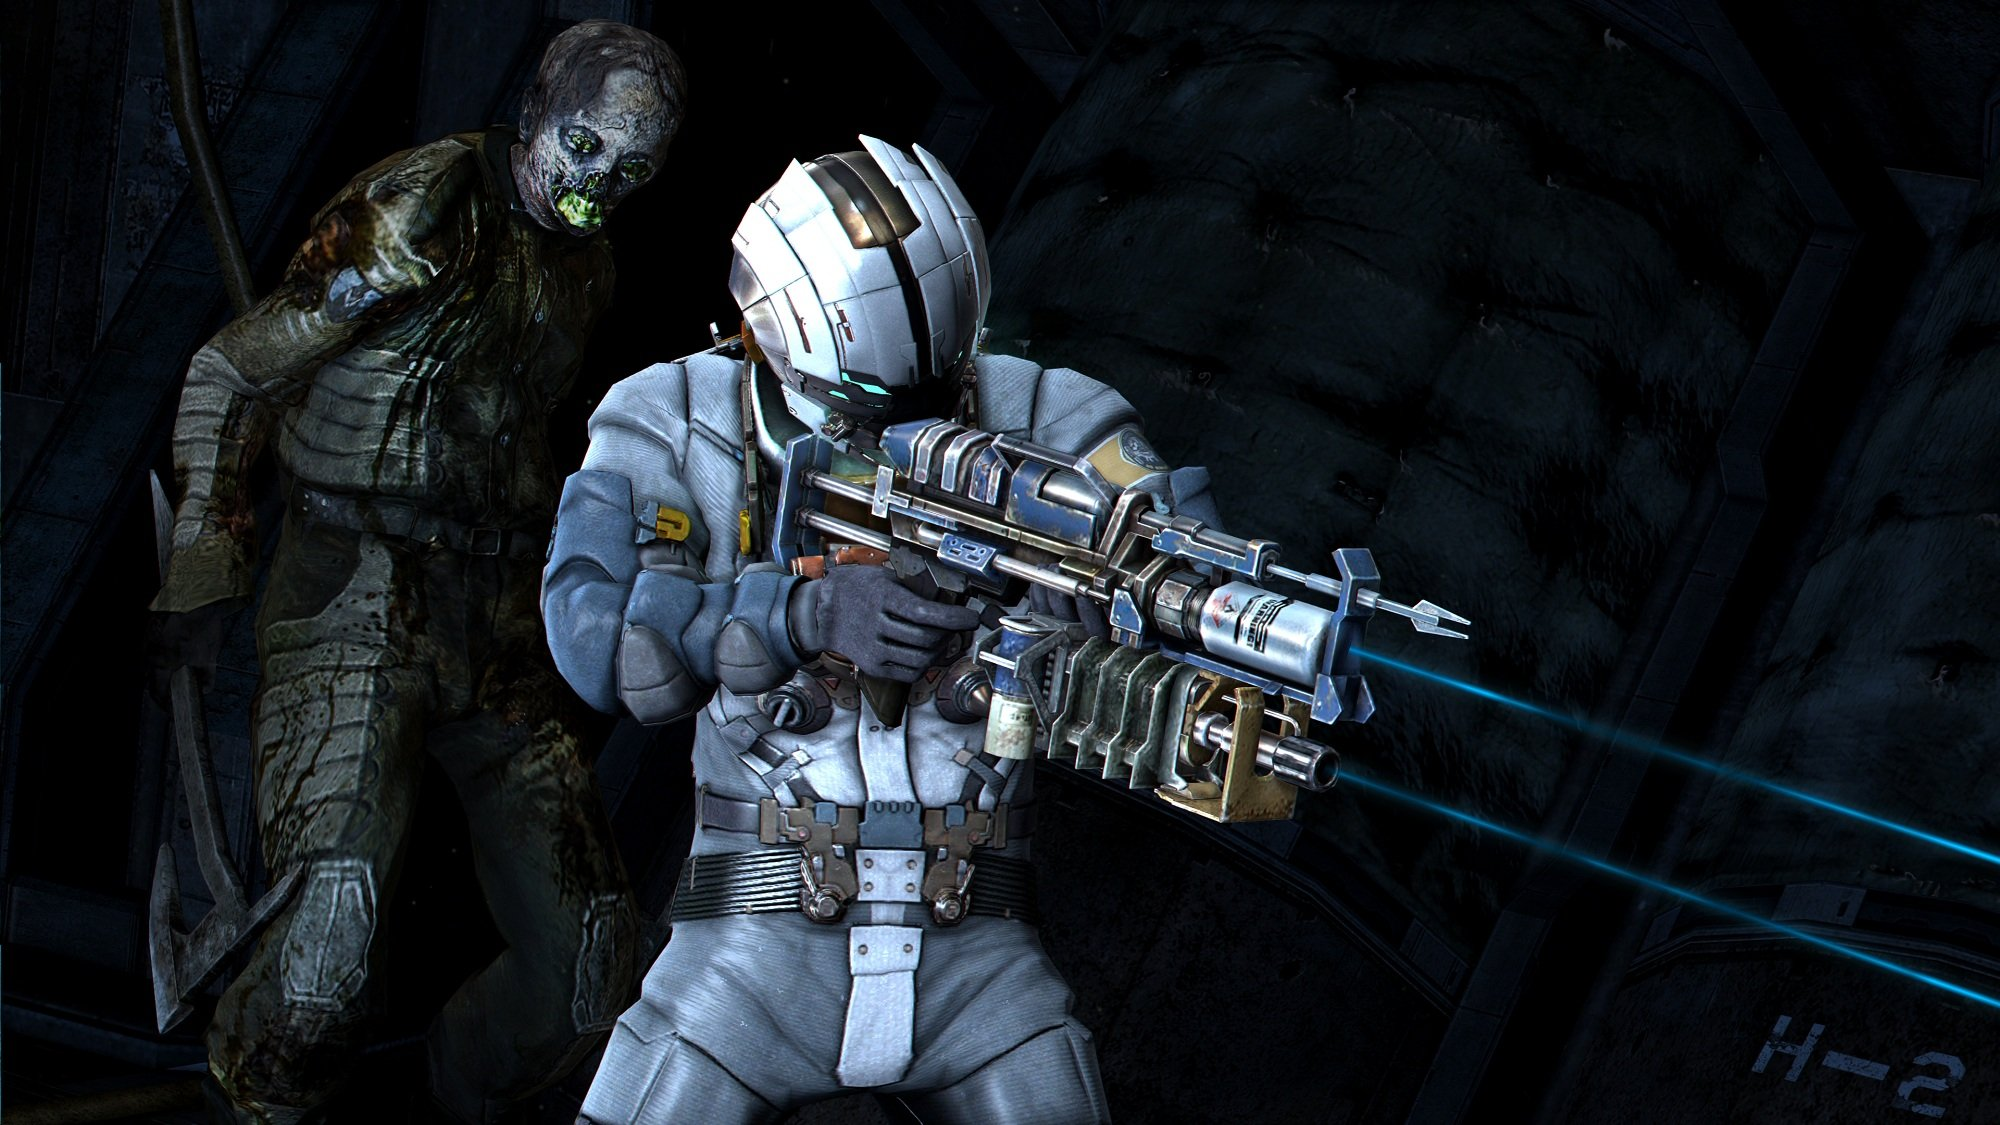 Dead Space 3 Oct 11th 8